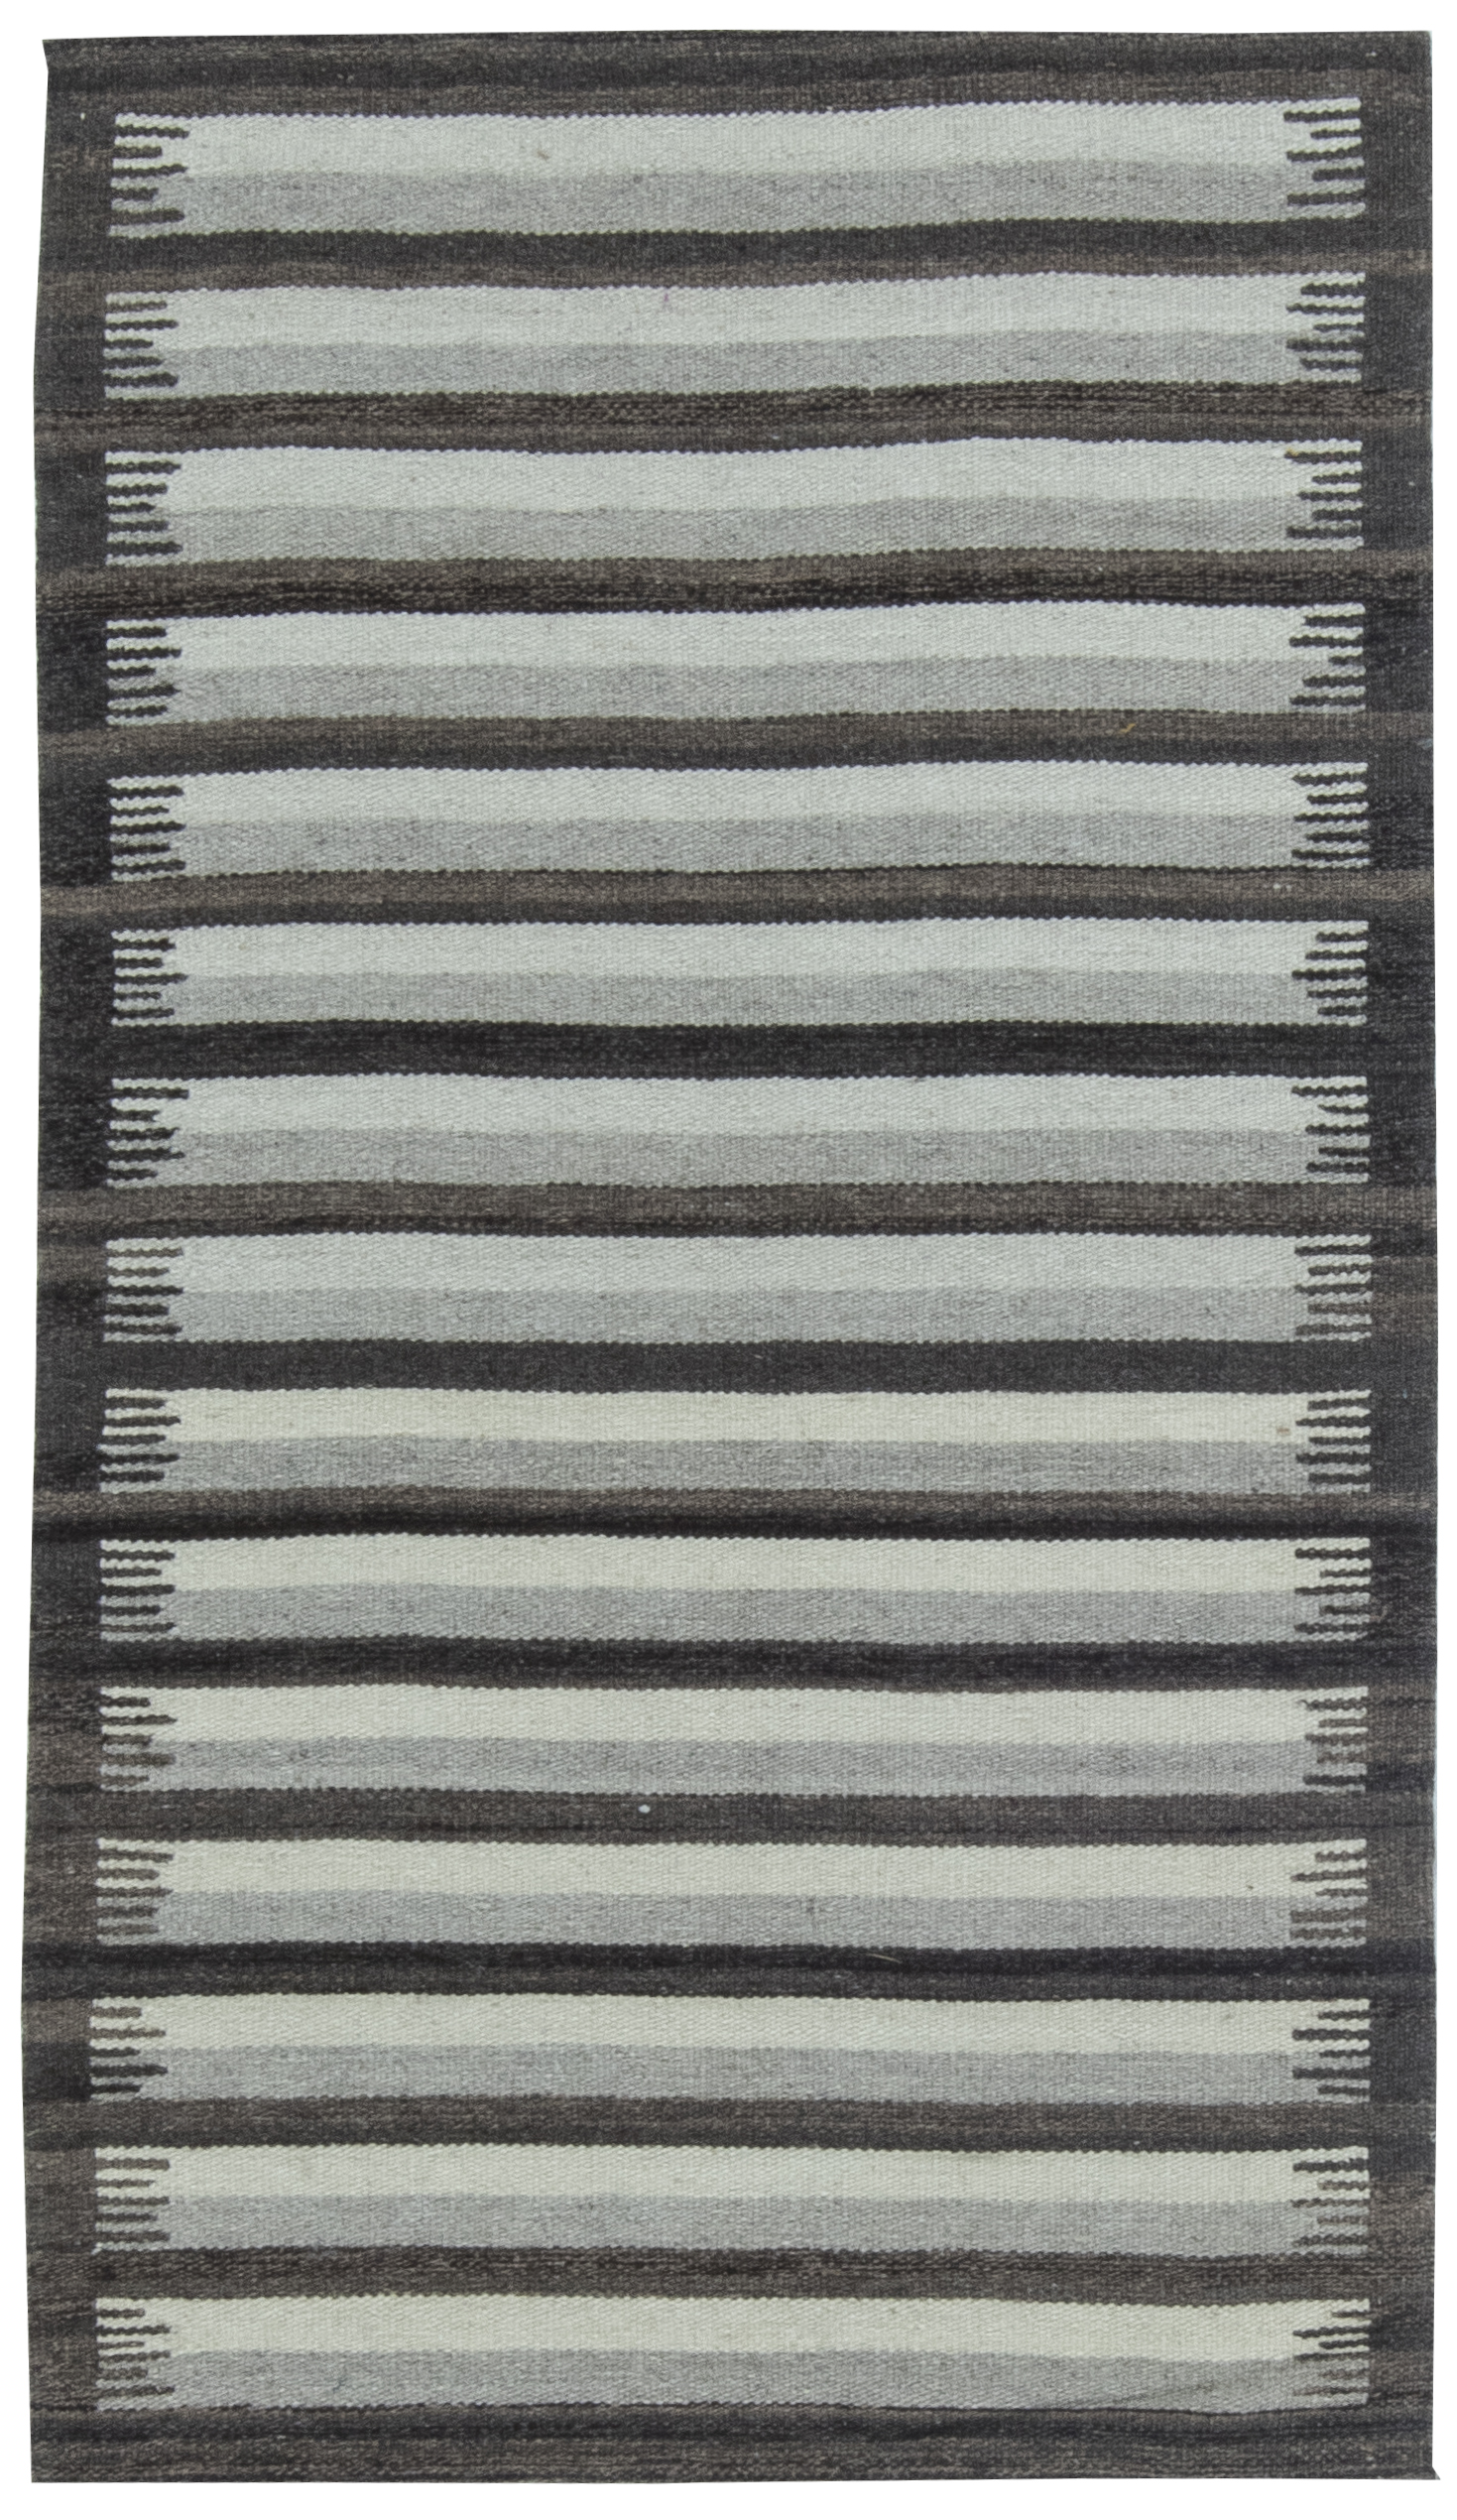 Contemporary Striped Gray and Anthracite Flat-Weave Cotton Rug N11516